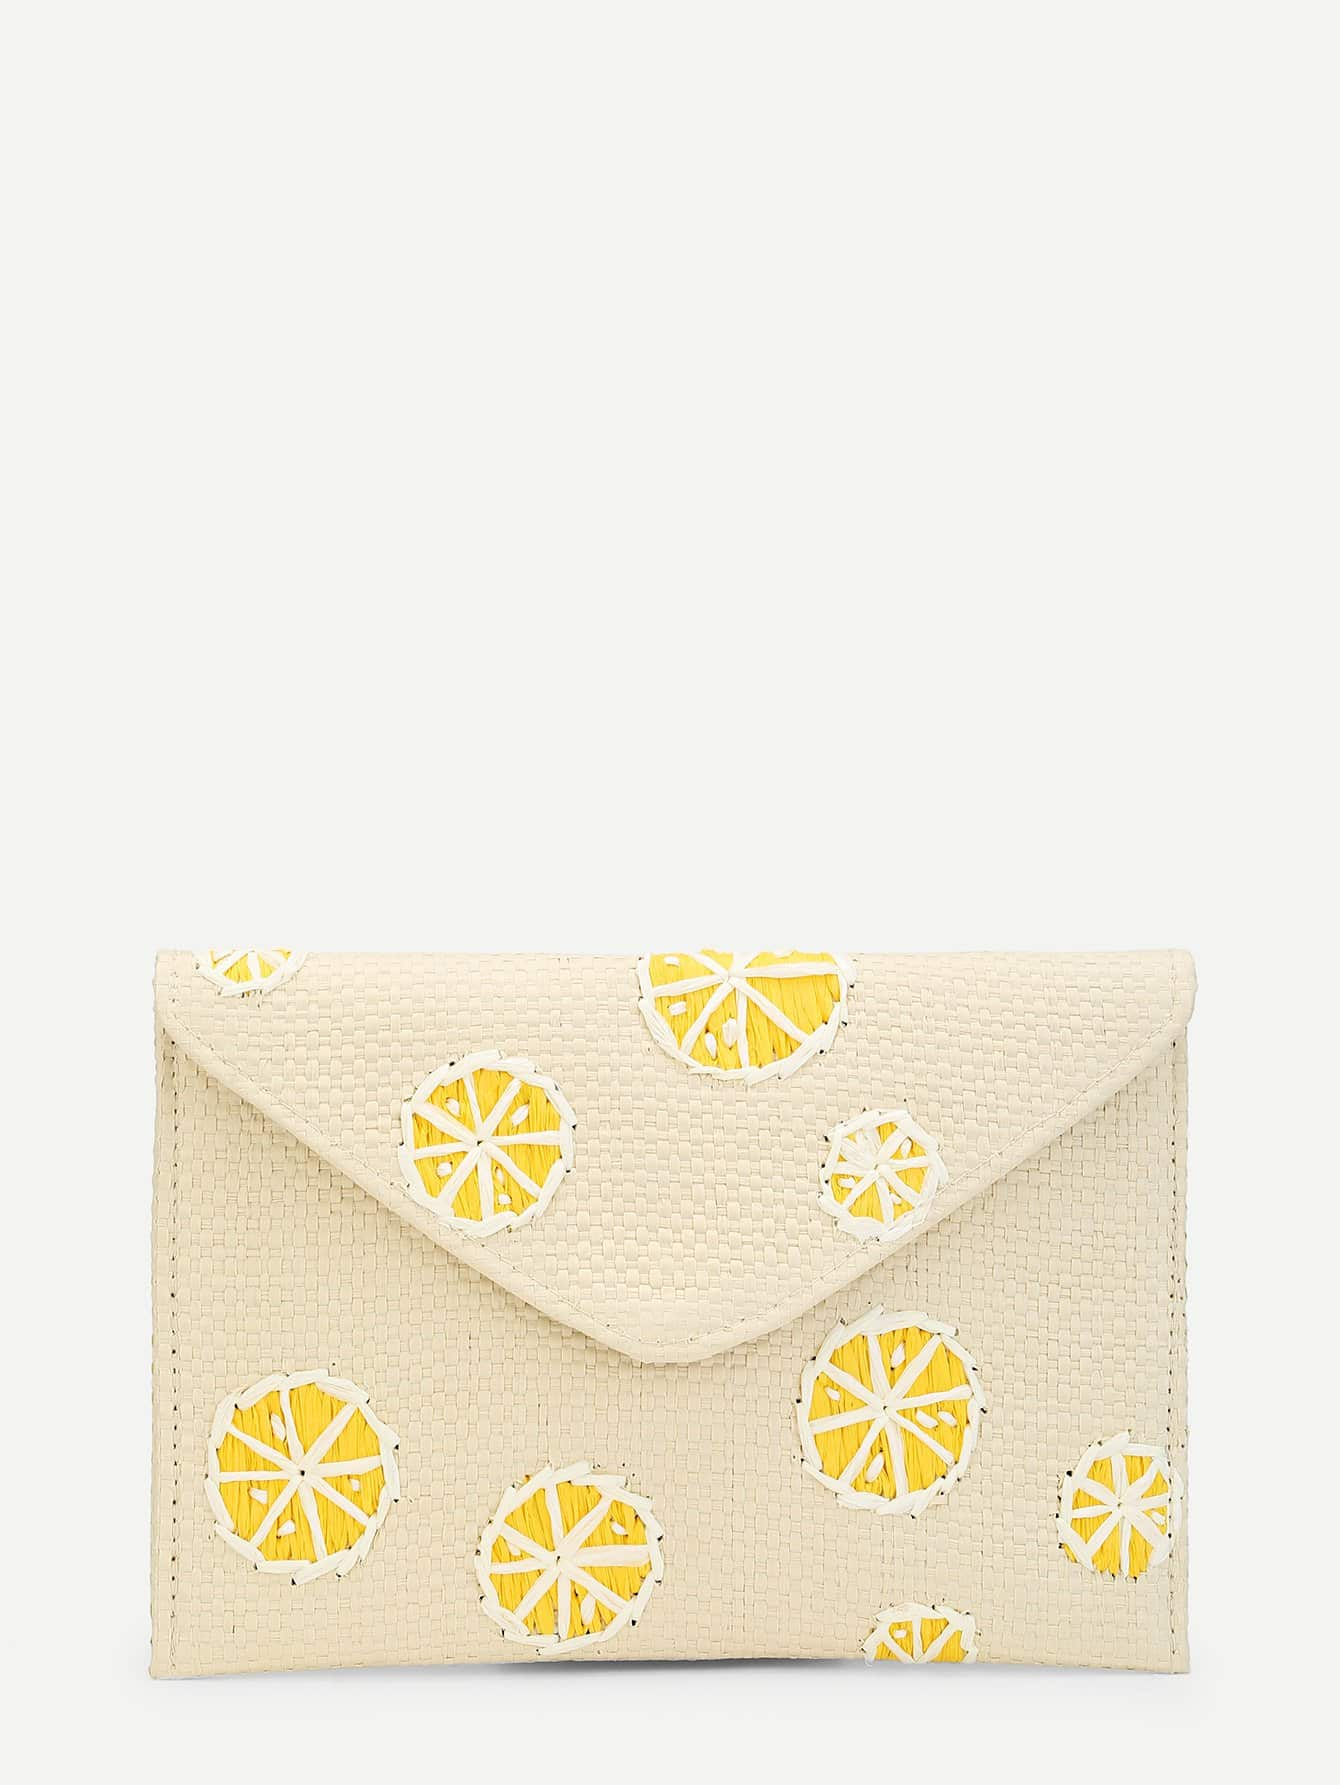 Lemon Pattern Clutch Bag сибелиус концерт для скрипки с оркестром симфония 3